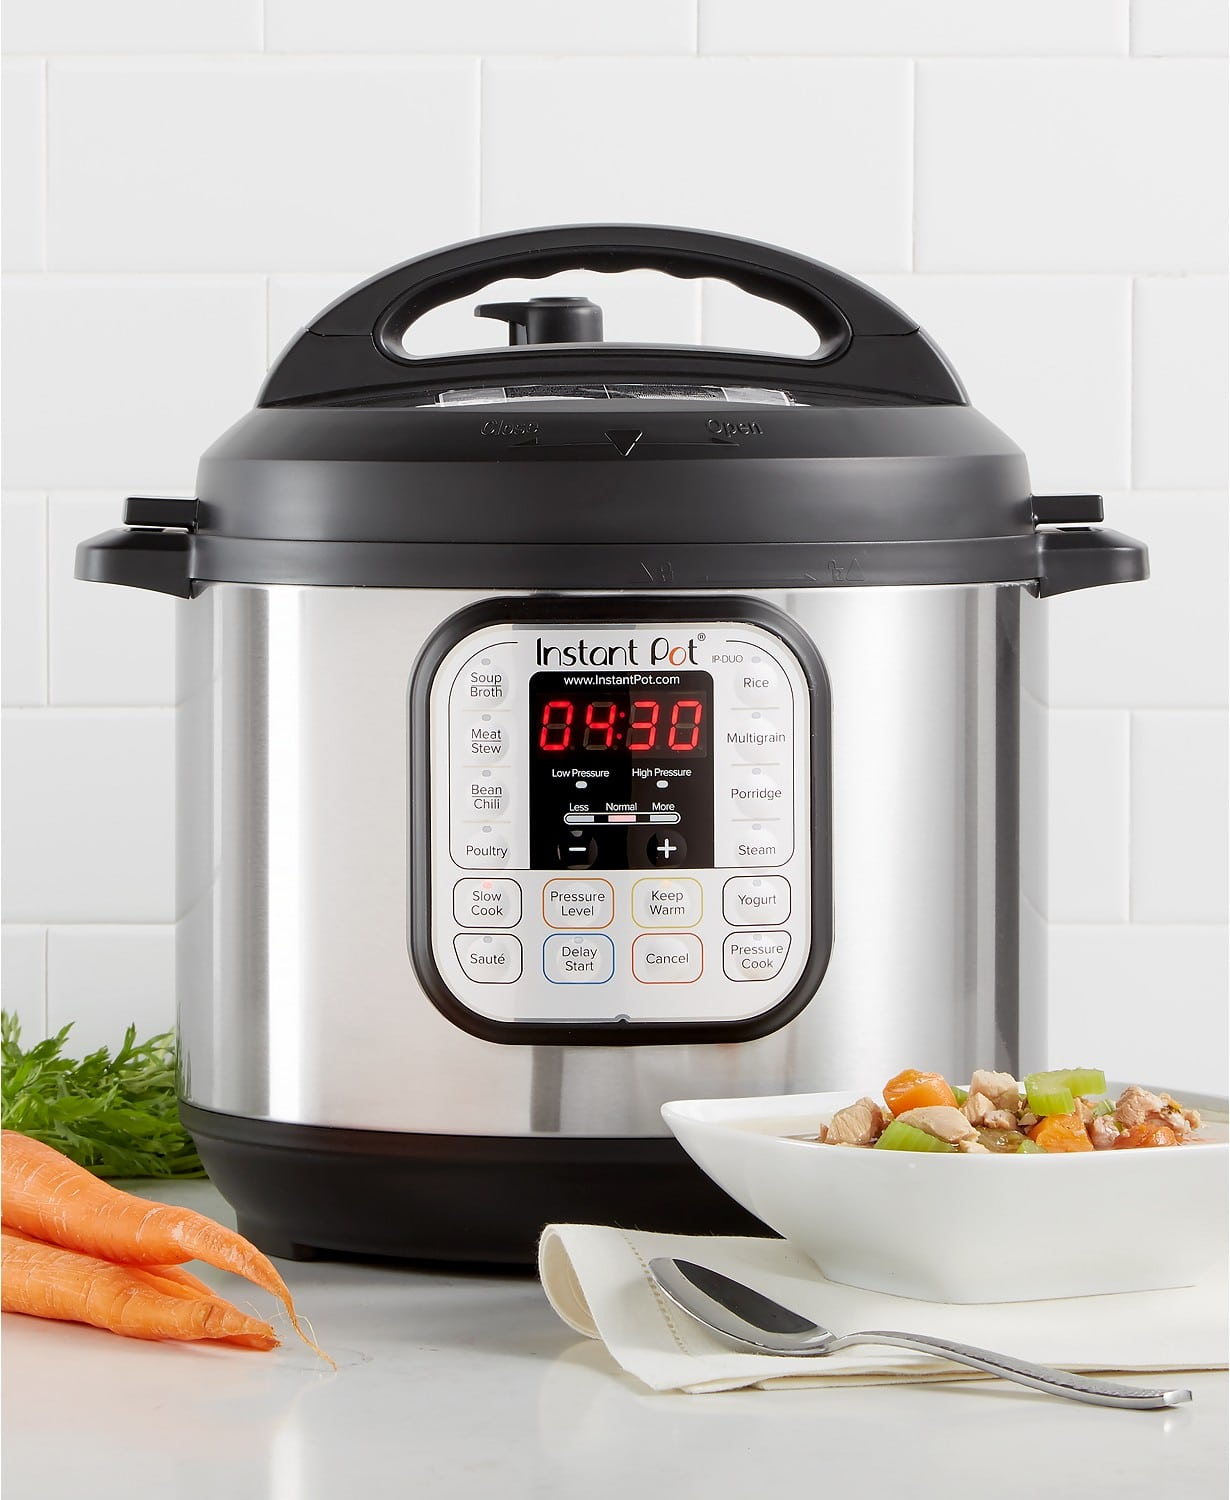 Instant Pot DUO60 7-in-1 Programmable Pressure Cooker 6-Qt gift idea for mothers, mother-in-law and professional chefs